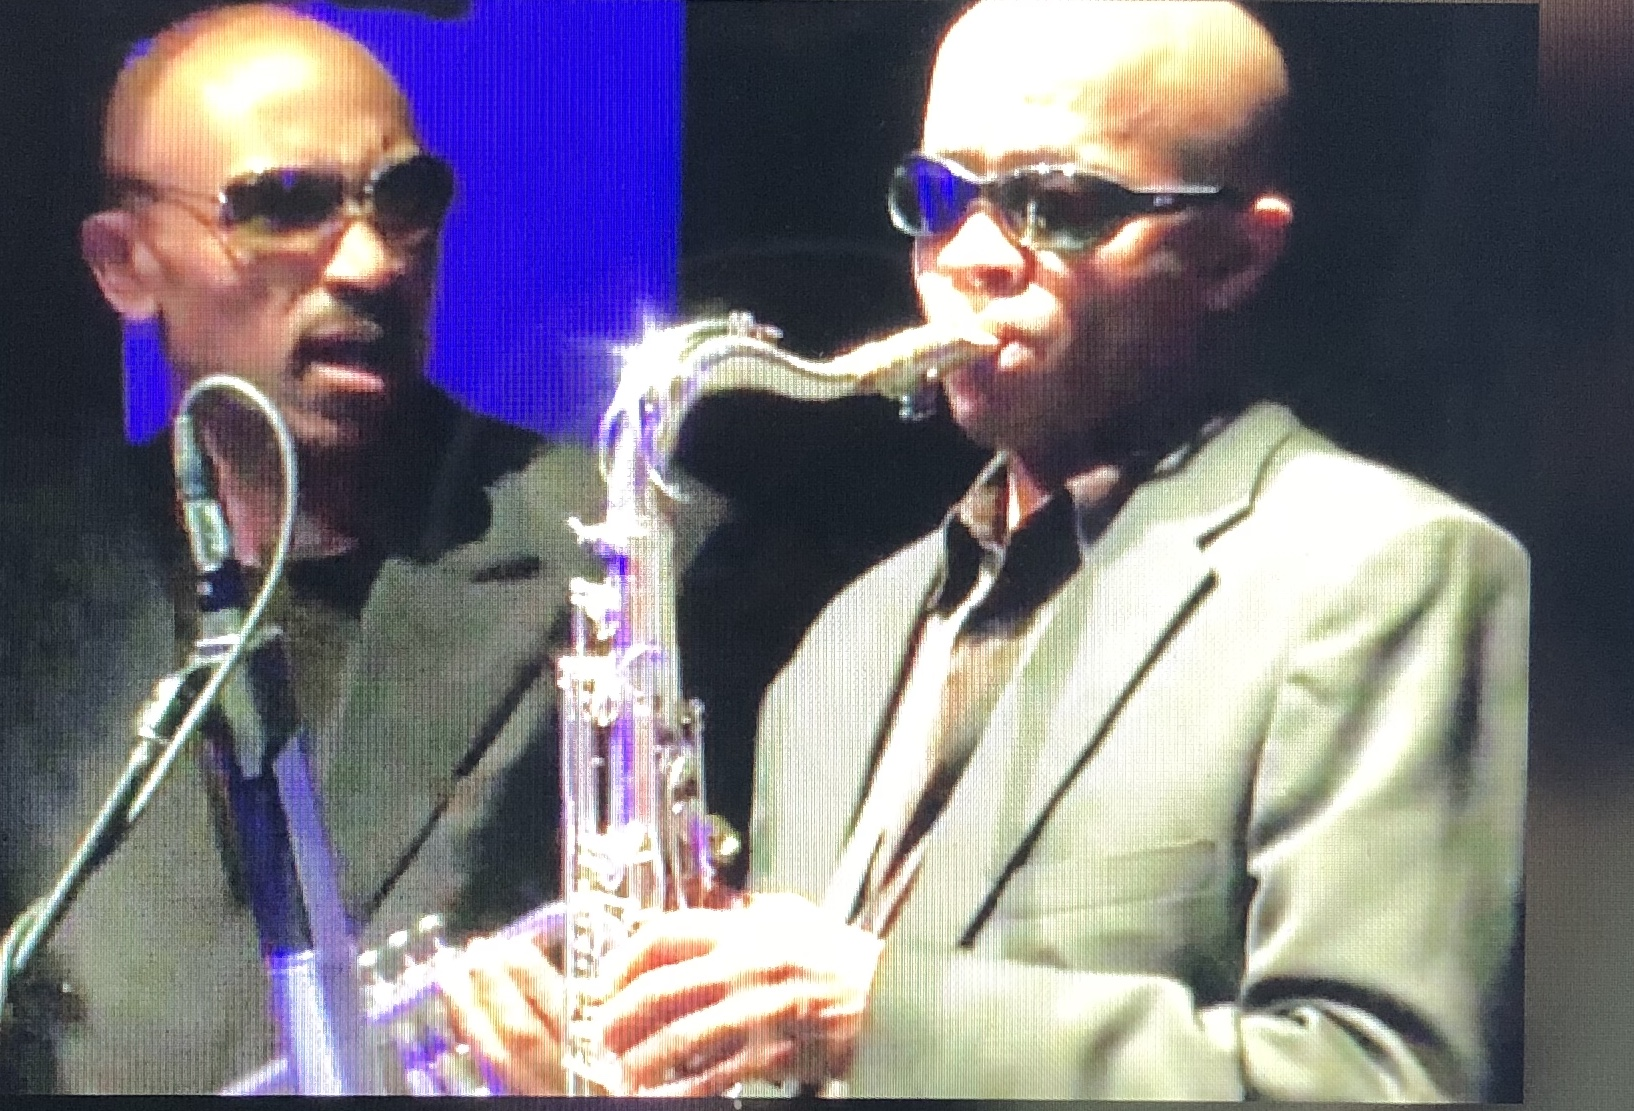 Johnny Long (Tenor Sax) and Buzzy Pindell (Trumpet)